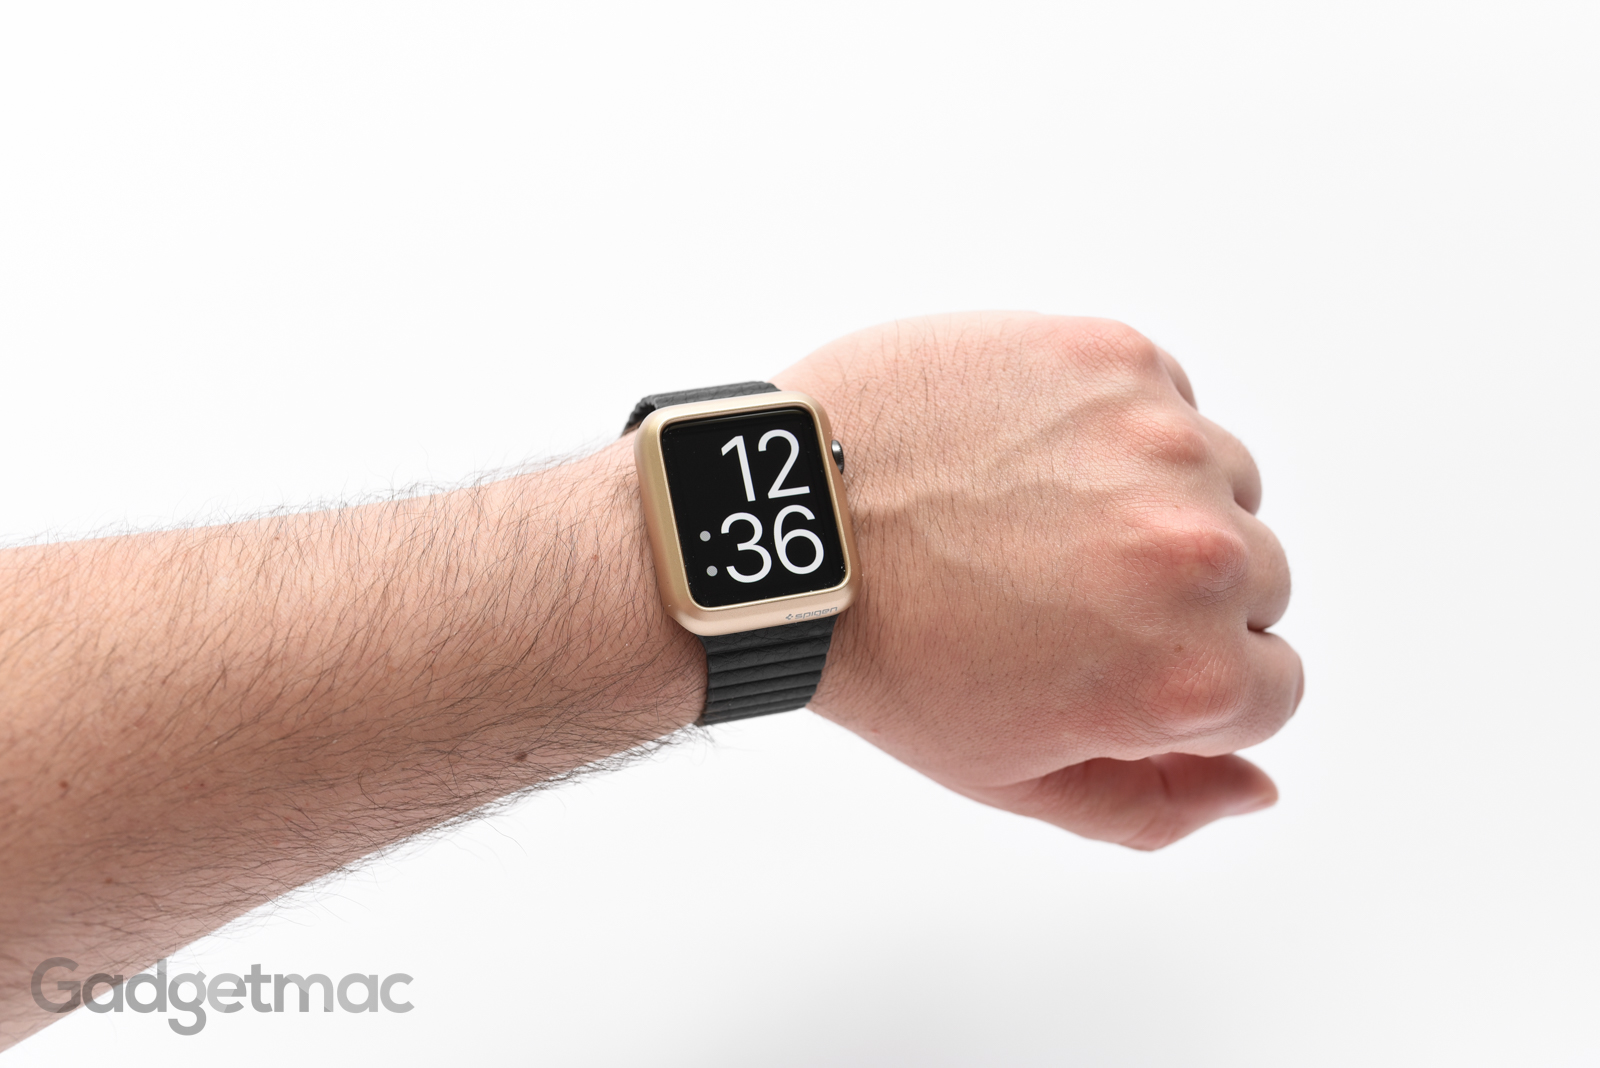 apple-watch-gold-case-with-leather-loop.jpg